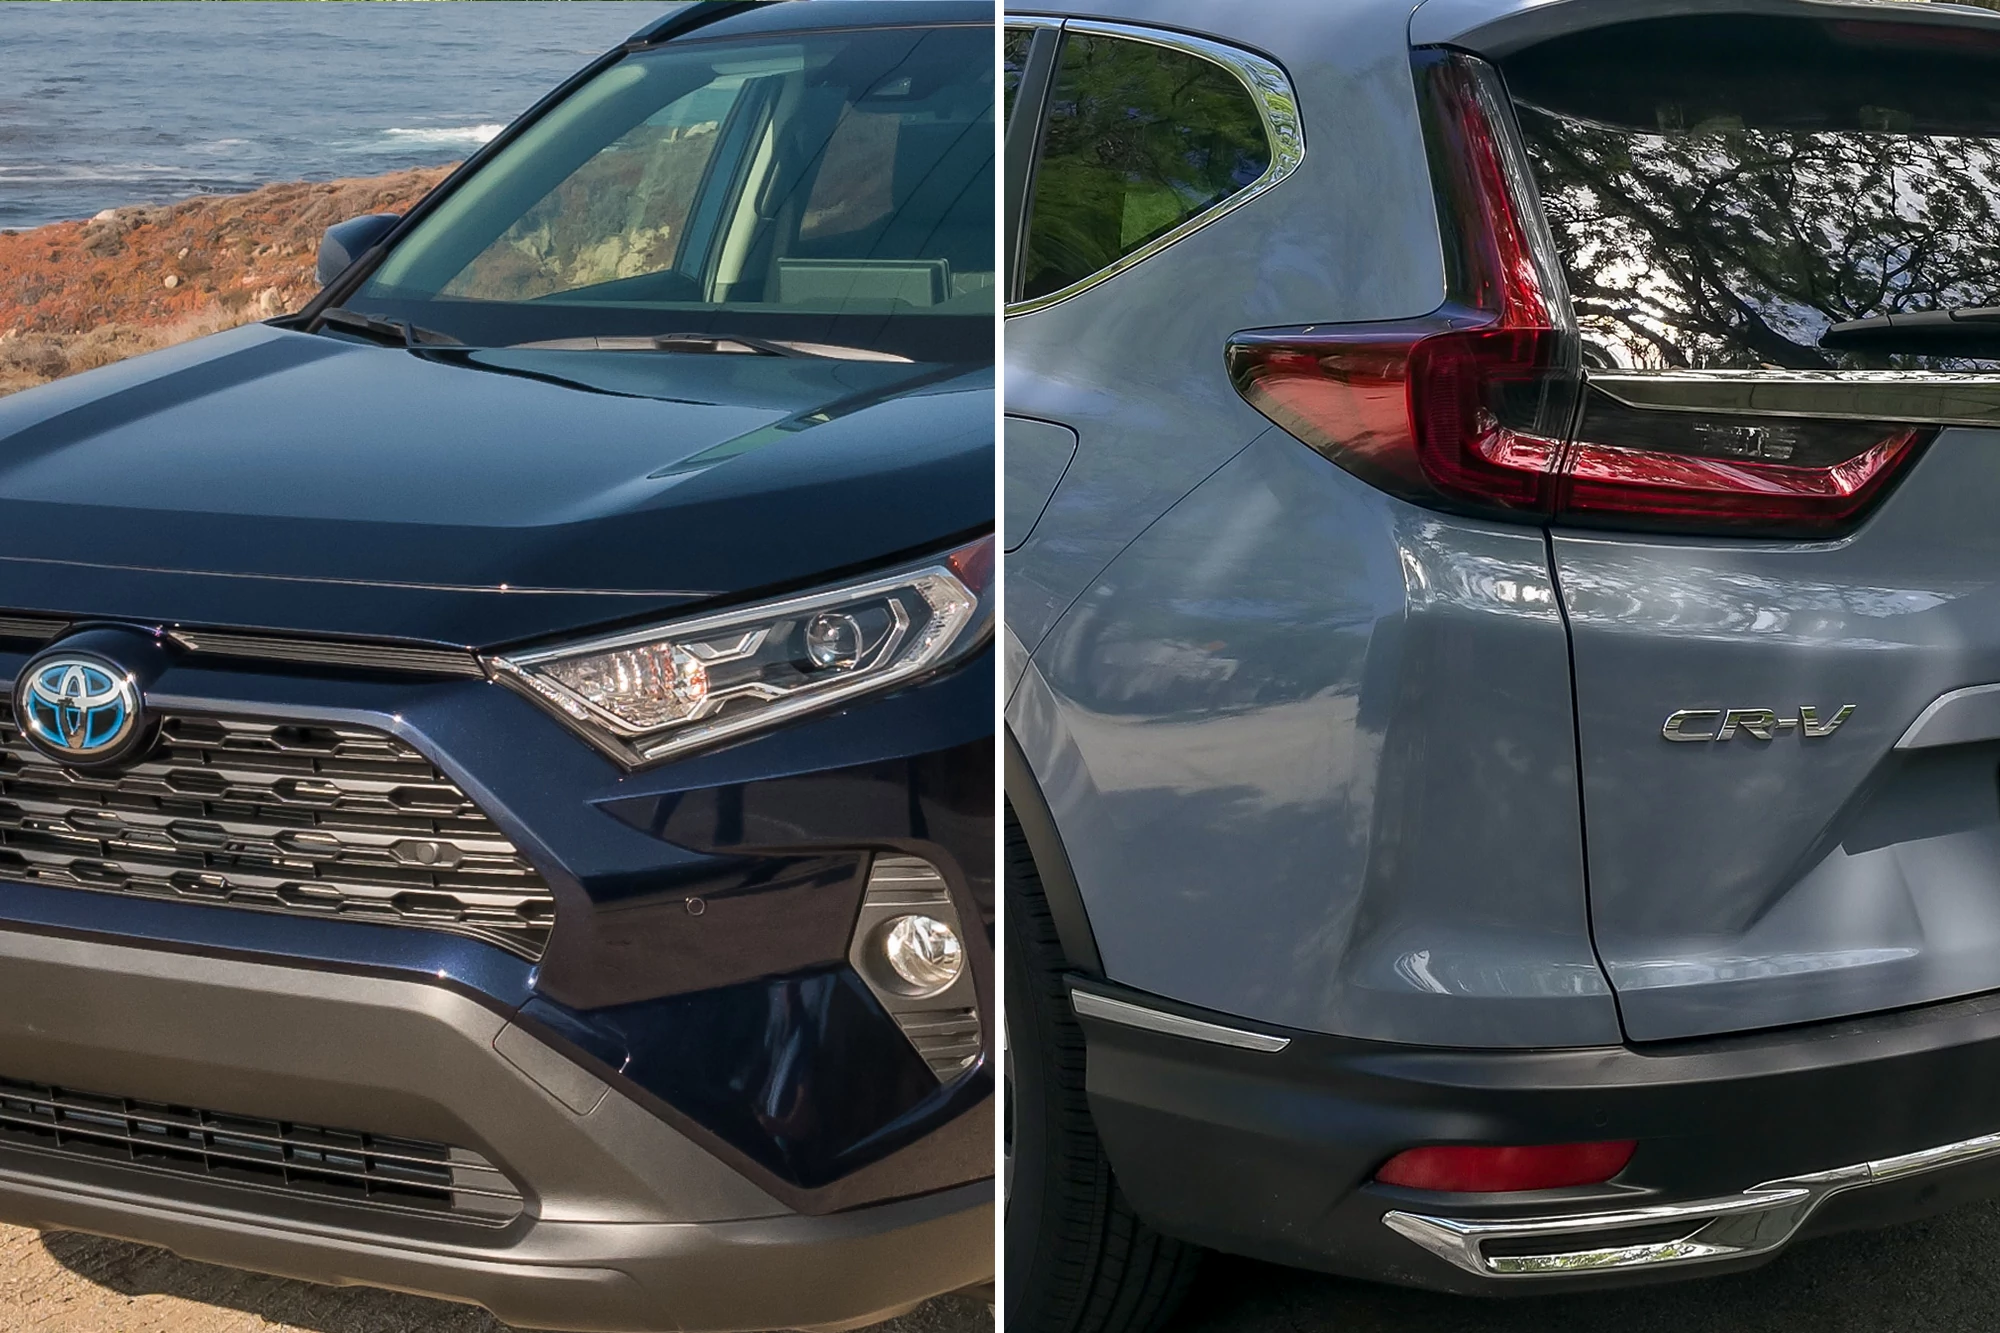 2020 Honda CR-V Hybrid Vs. 2020 Toyota RAV4 Hybrid: Which Is Better?